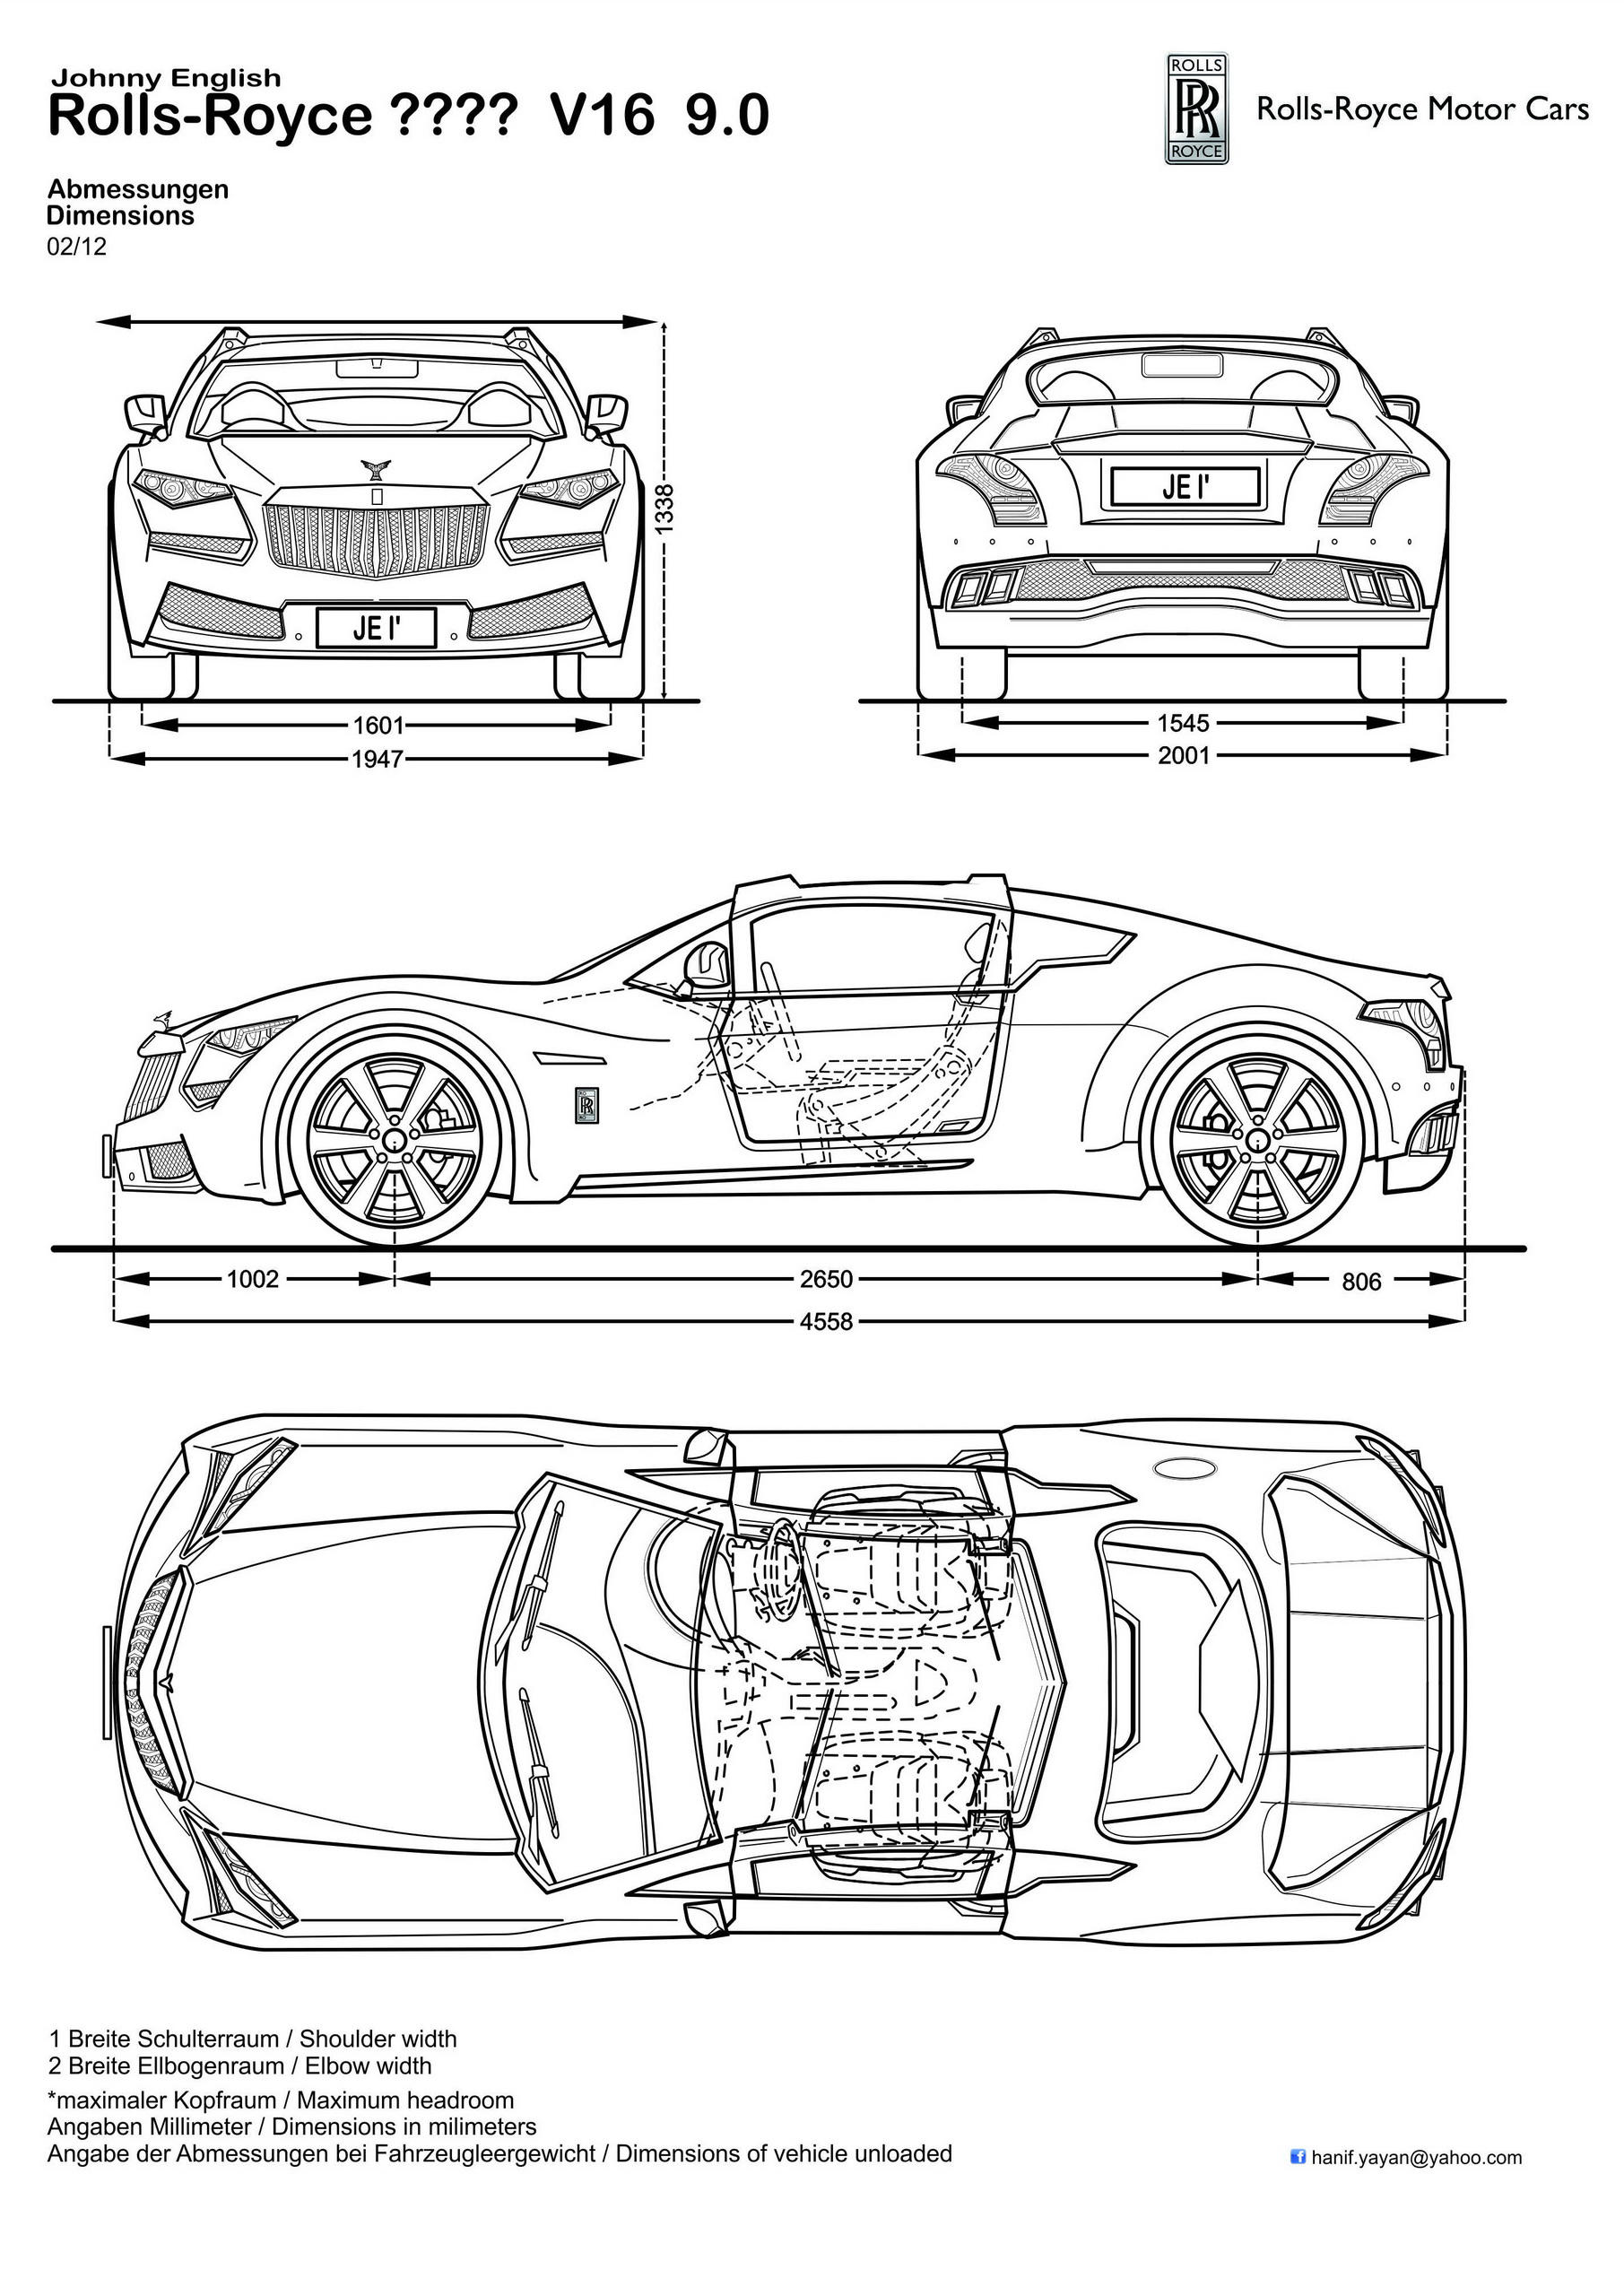 Johnny English Rolls Royce Design Blueprints By Hanif